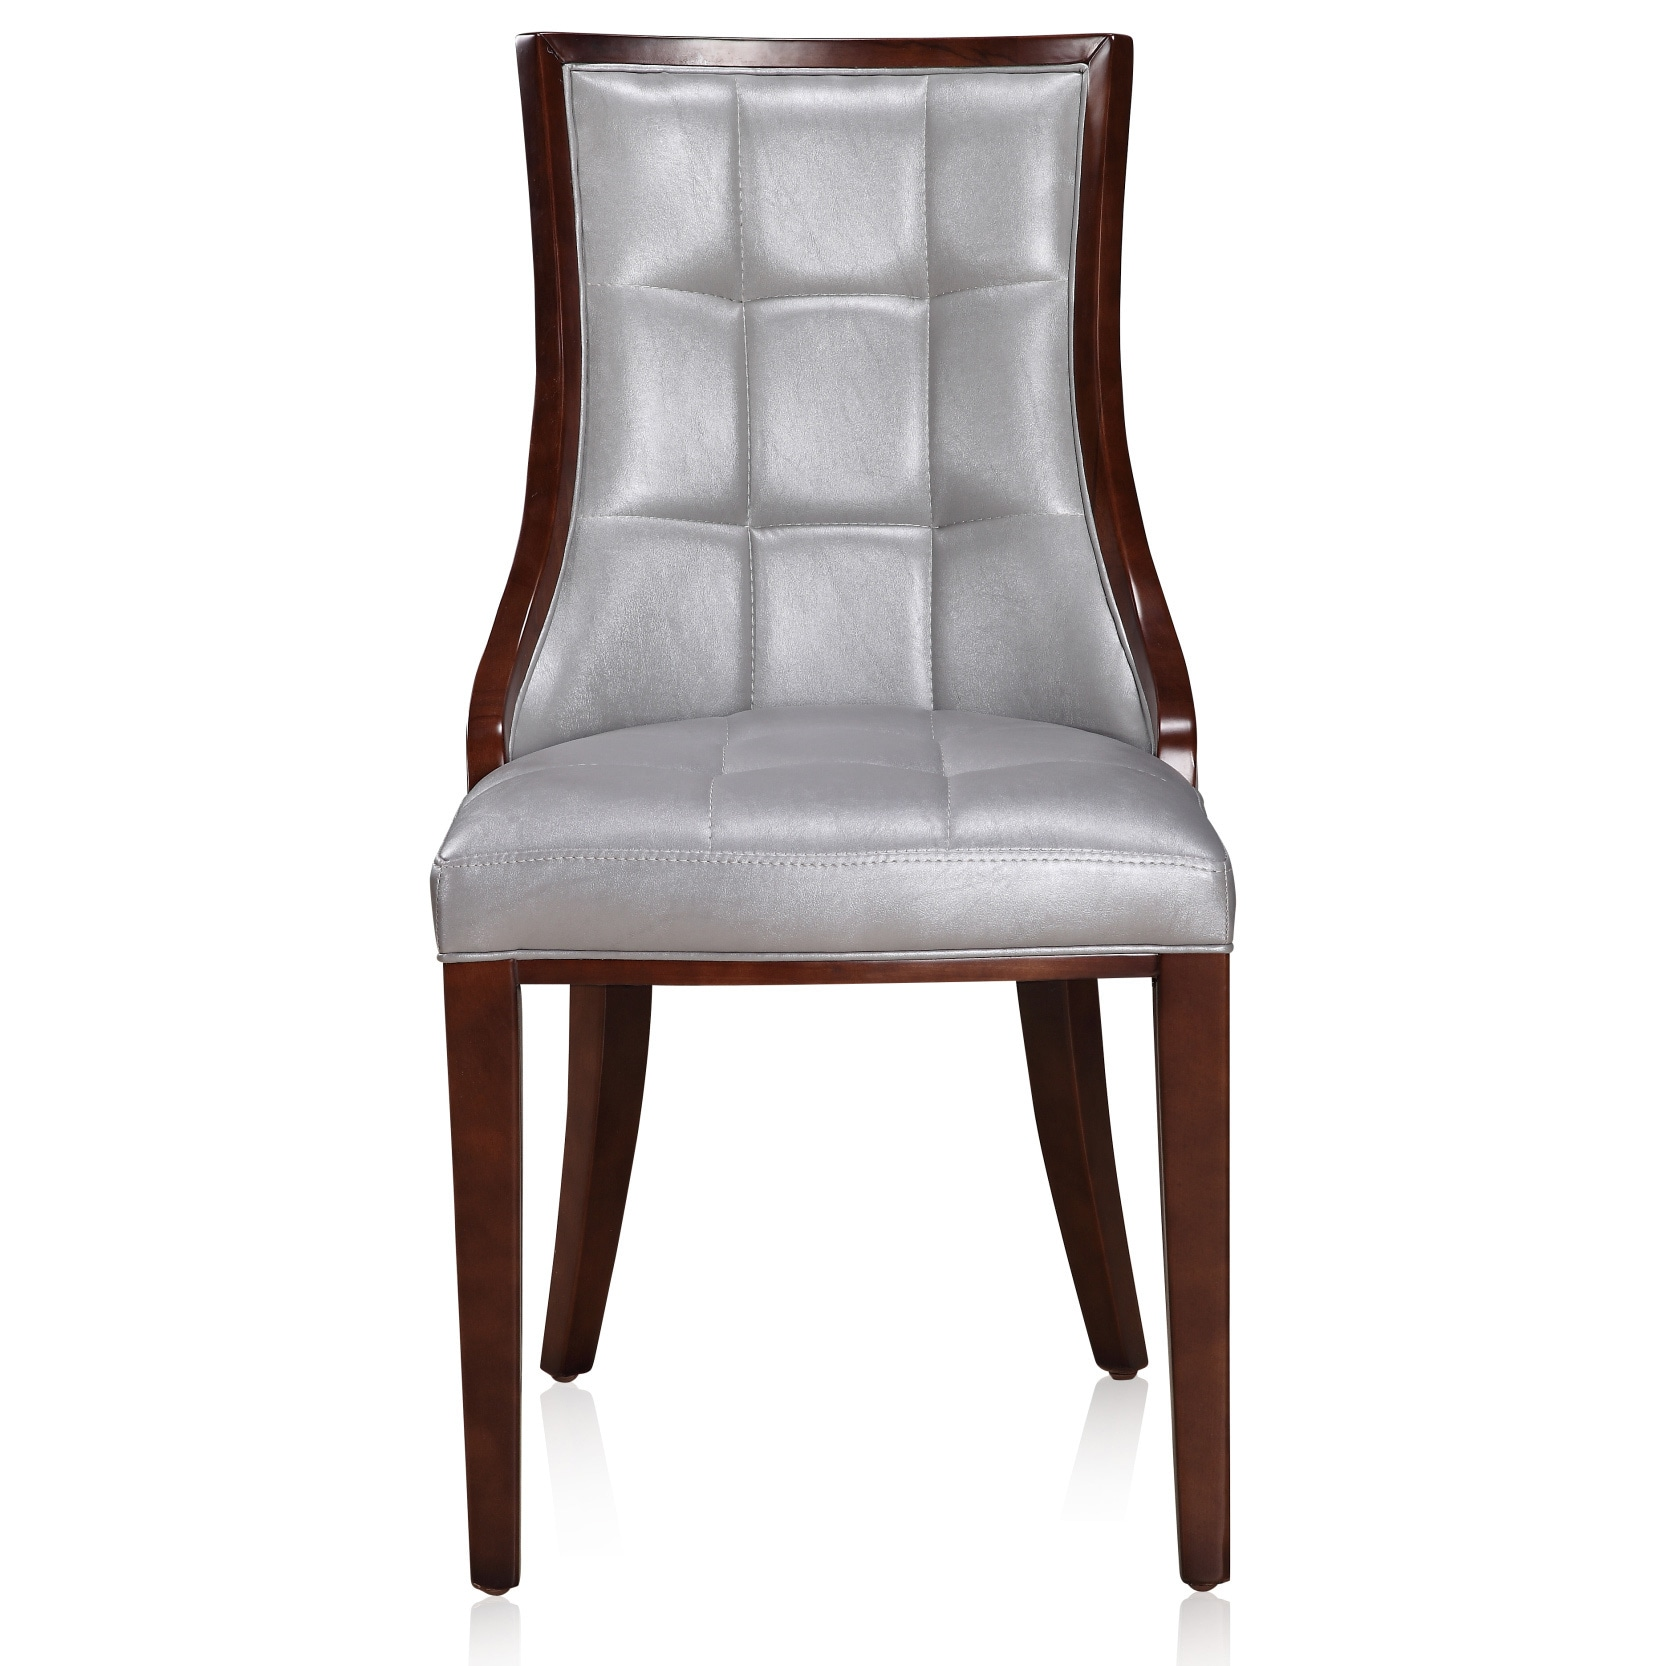 barrel dining chairs. Barrel Leather Dining Chairs (Set Of 2) - Free Shipping Today Overstock.com 14098746 A